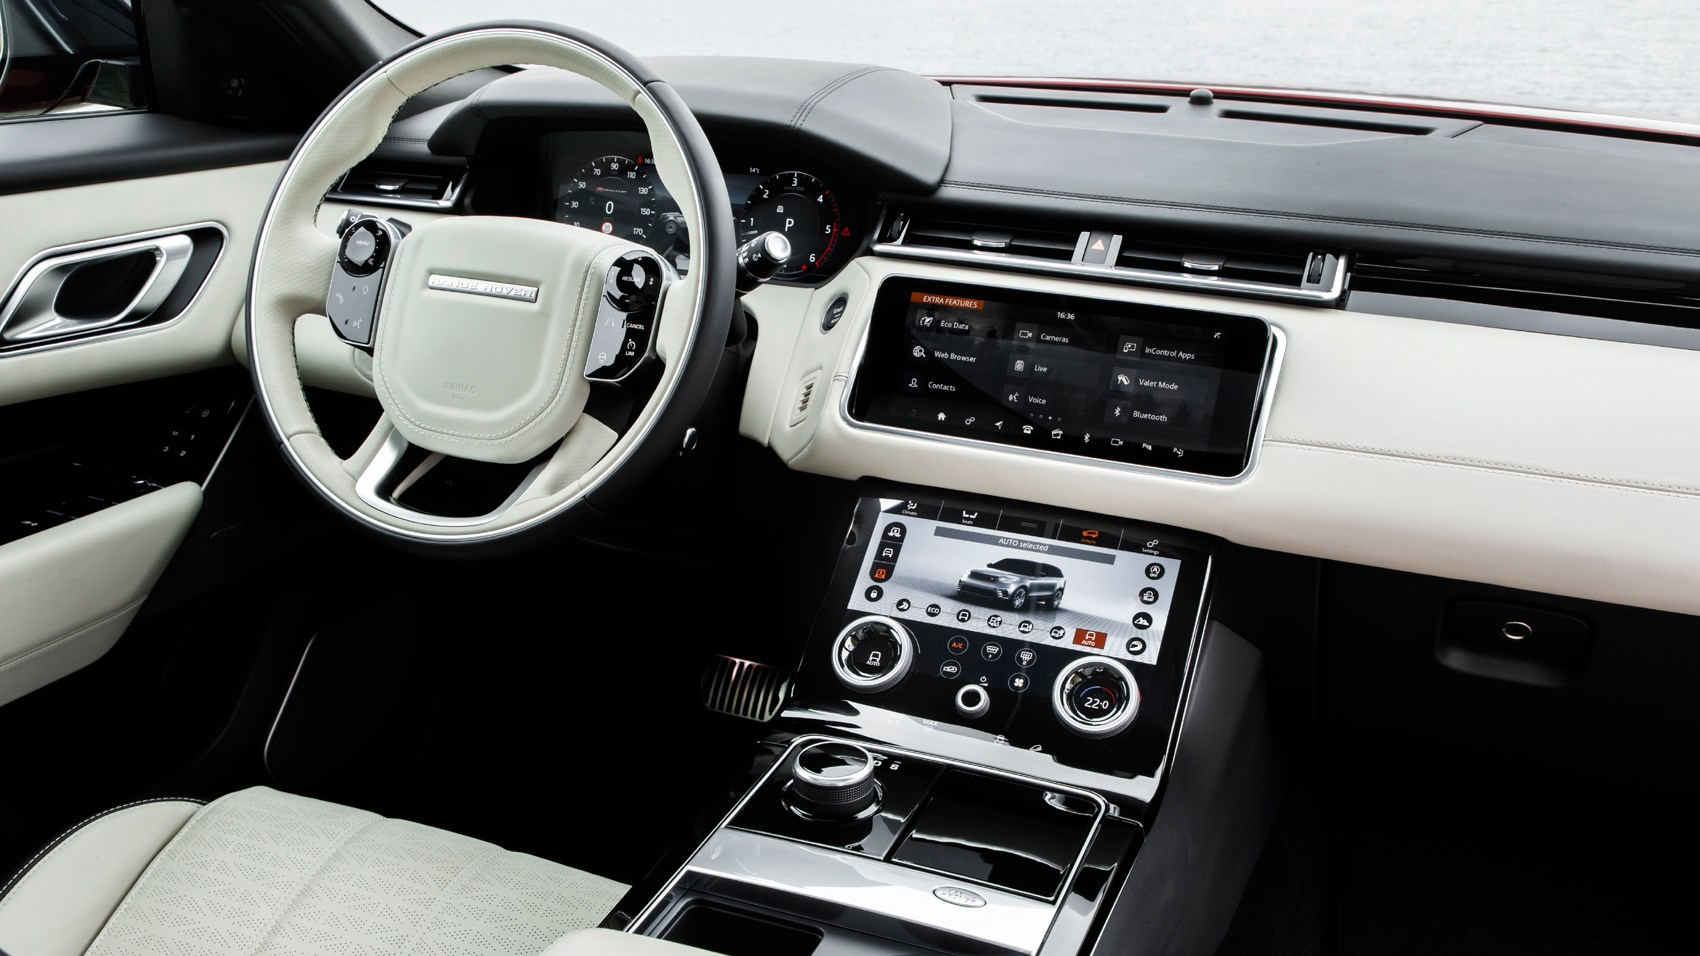 2017 Land Rover Discovery Interior >> Range Rover Velar (2017) review | CAR Magazine